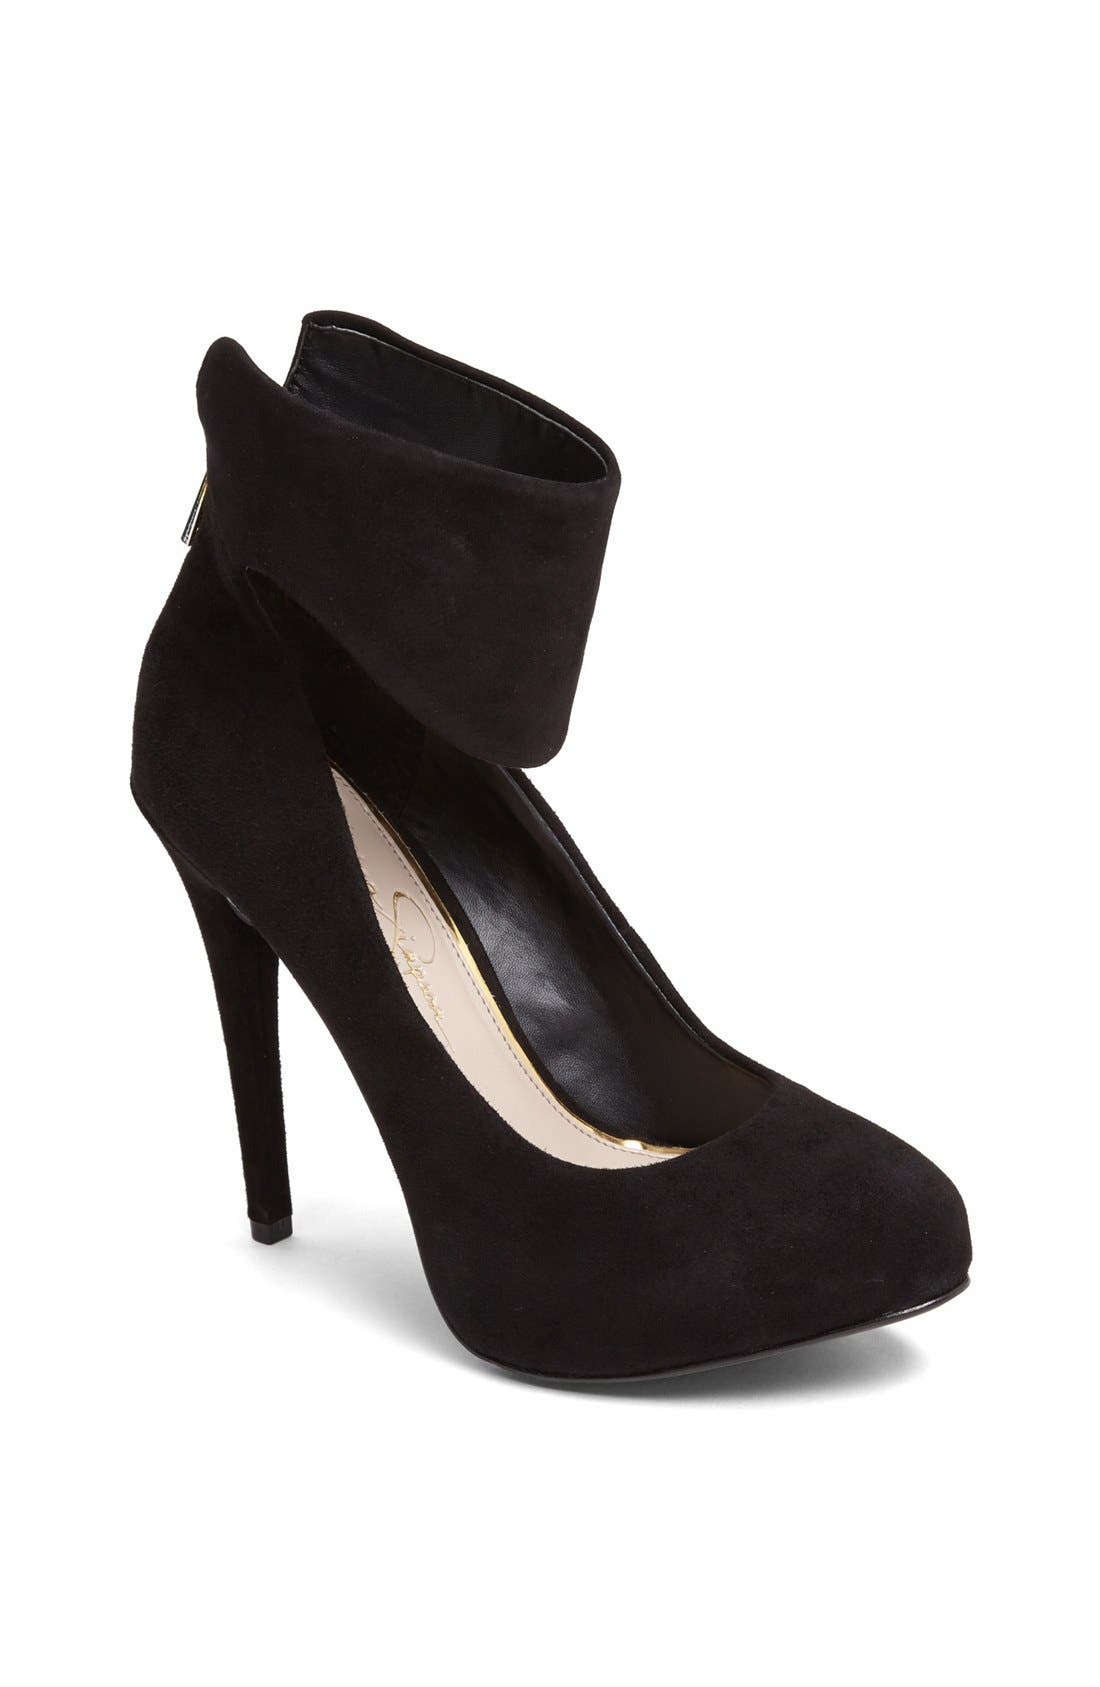 Main Image - Jessica Simpson 'Nwing' Pump